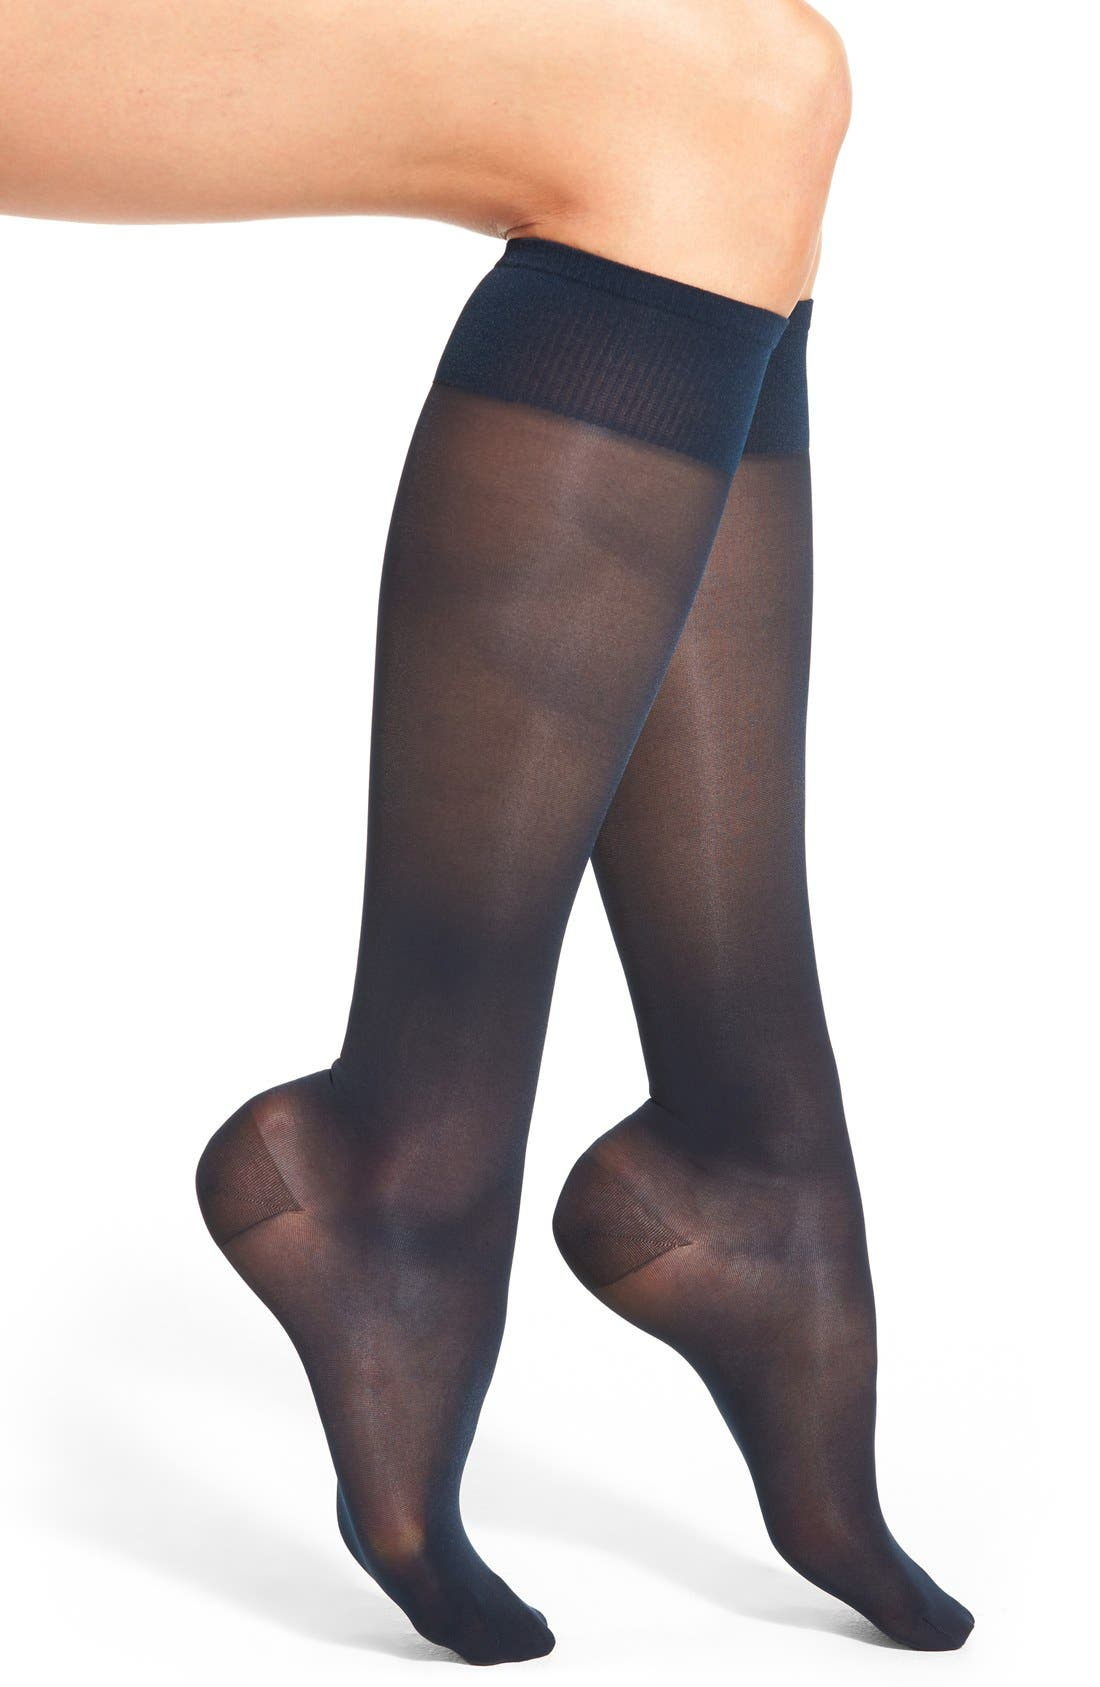 Main Image - INSIGNIA by SIGVARIS Knee High Trouser Socks